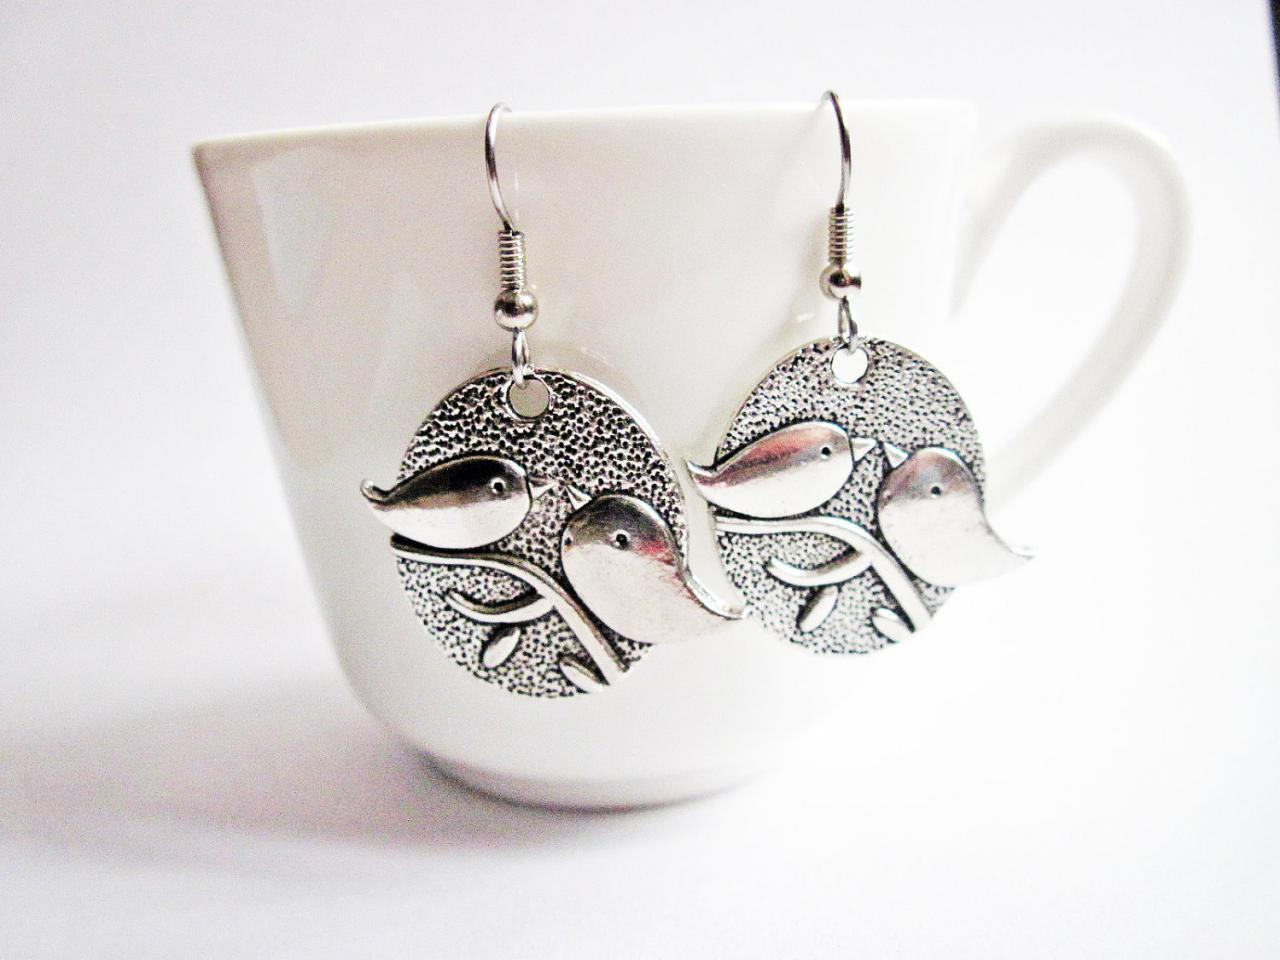 Bird Earrings, Love Birds Earrings, Lovebirds Earrings, Everyday Wear, Silver, Twitter Bird, Mod Bird Earrings, Retro Style, Bird Jewelry